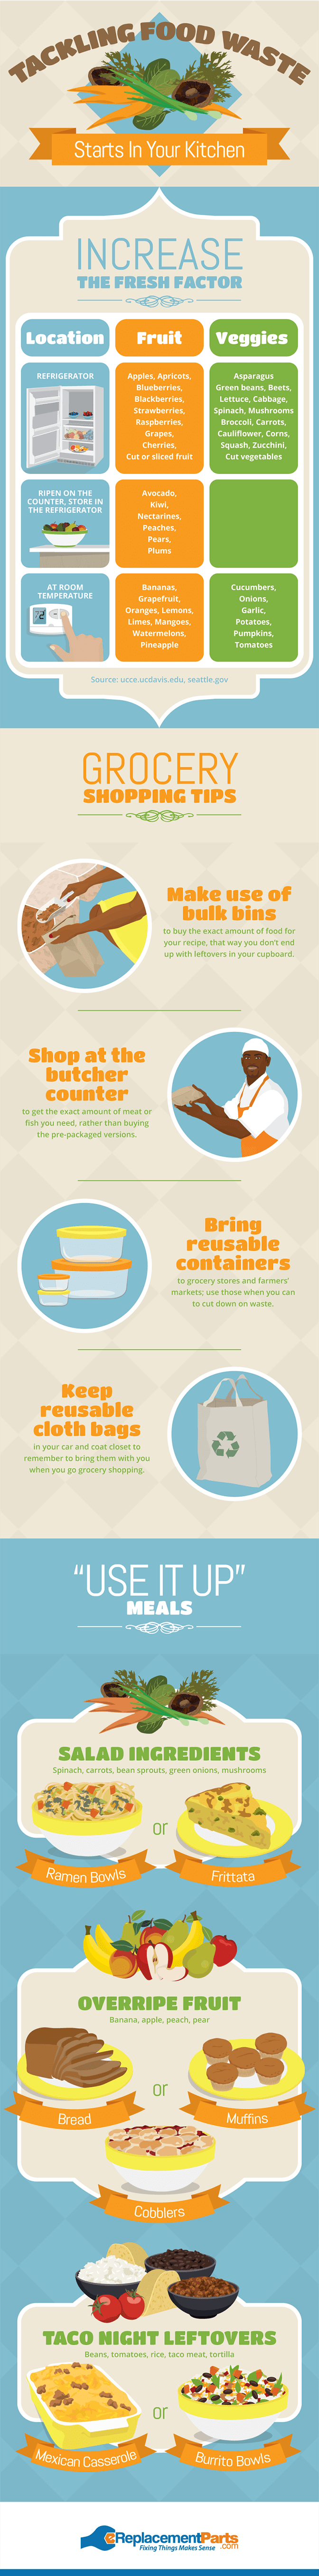 Preventing Food Waste Infographic